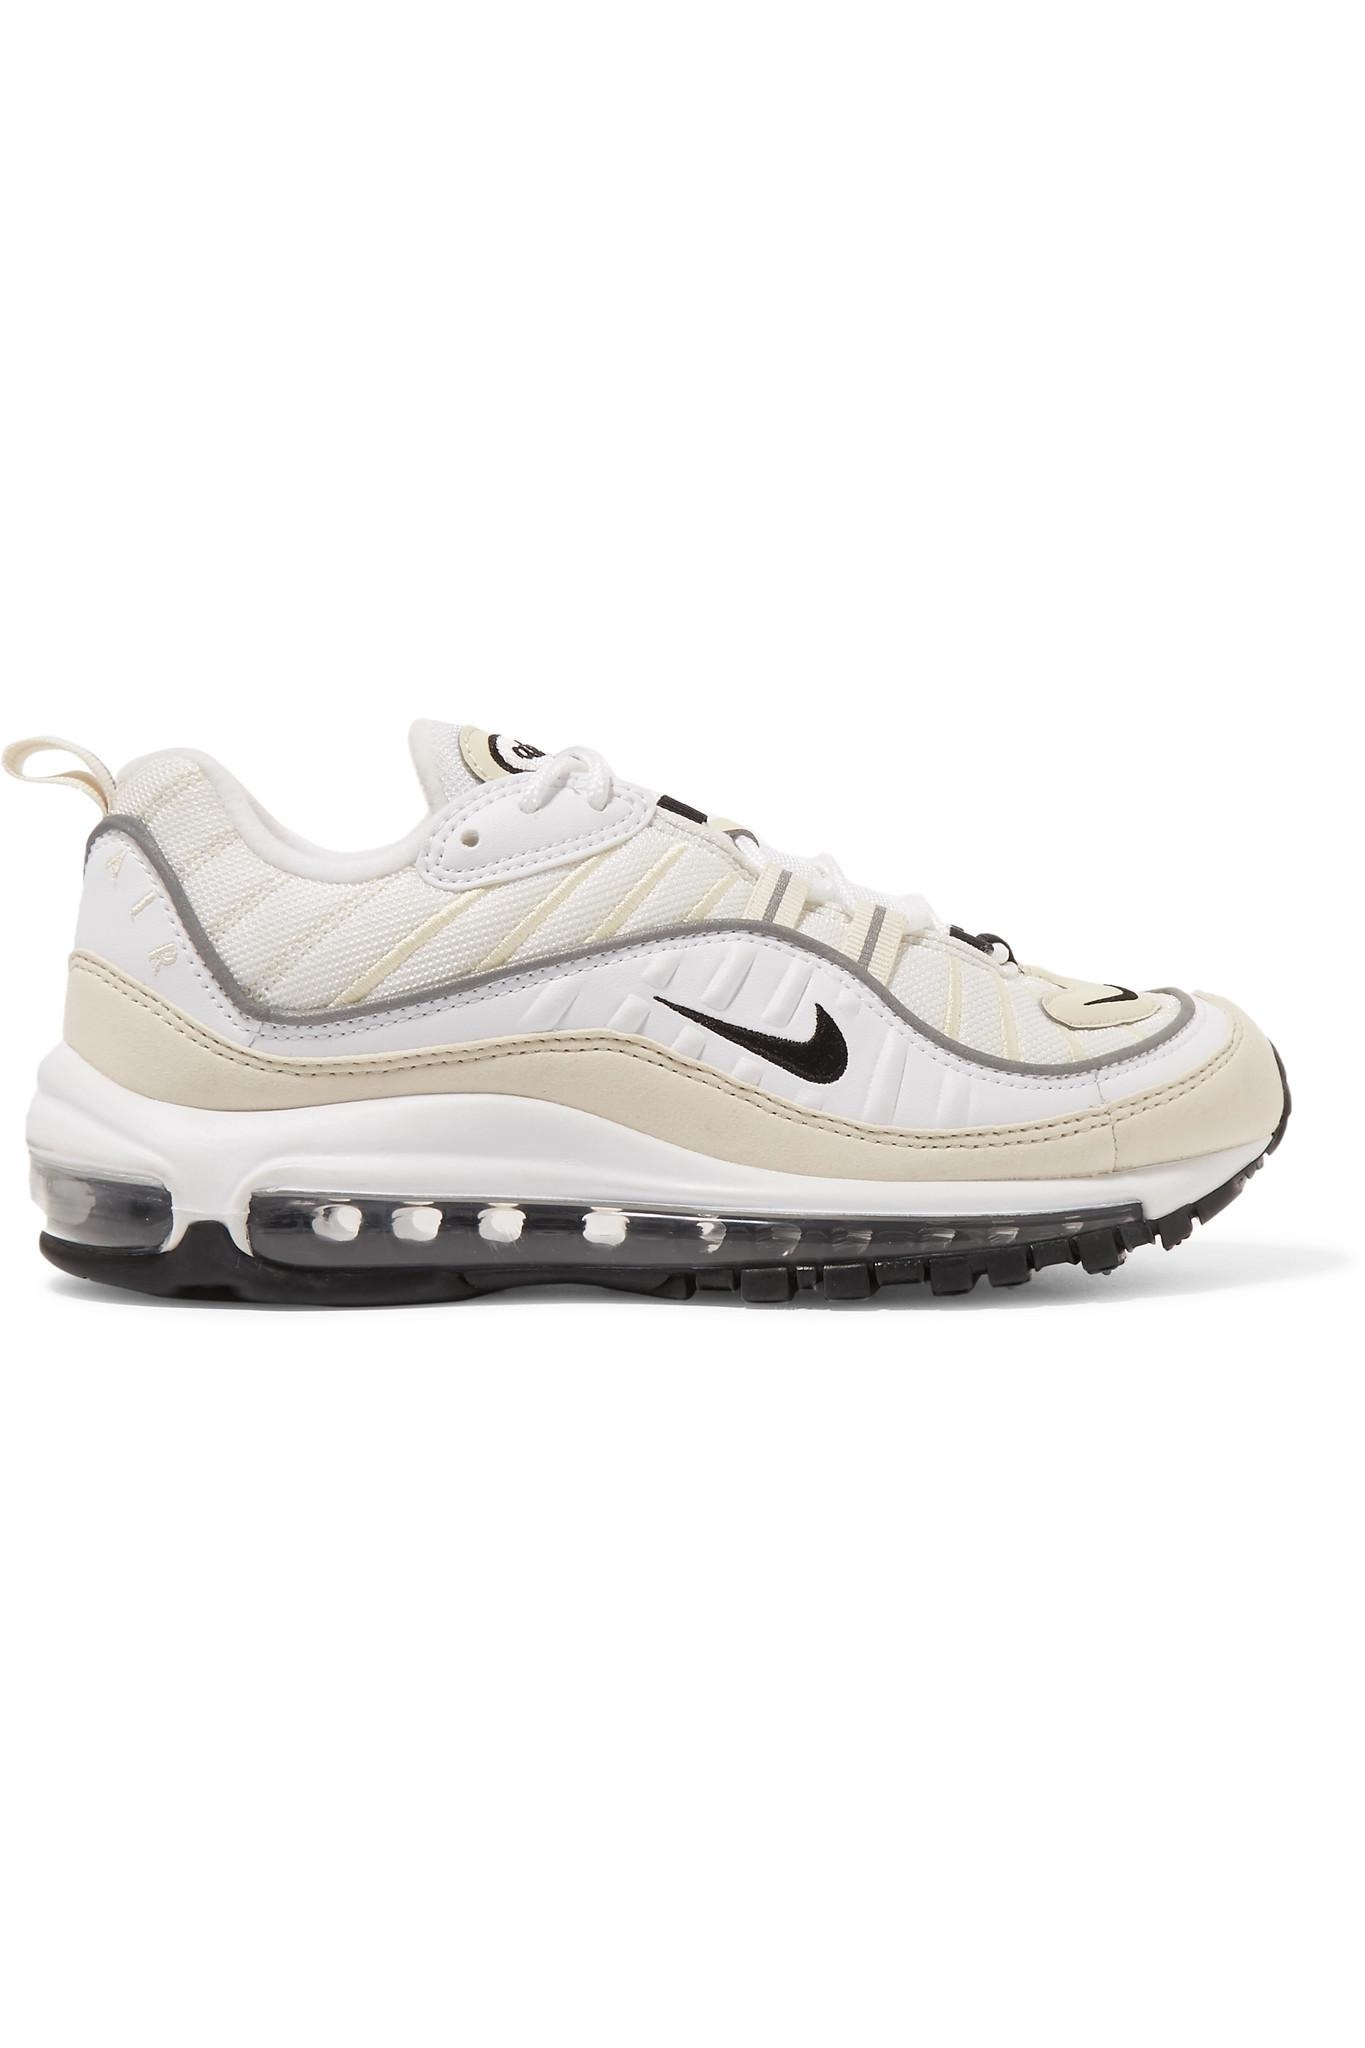 7a3962c82cb Lyst - Nike Air Max 98 Leather And Nubuck-trimmed Mesh Sneakers in White